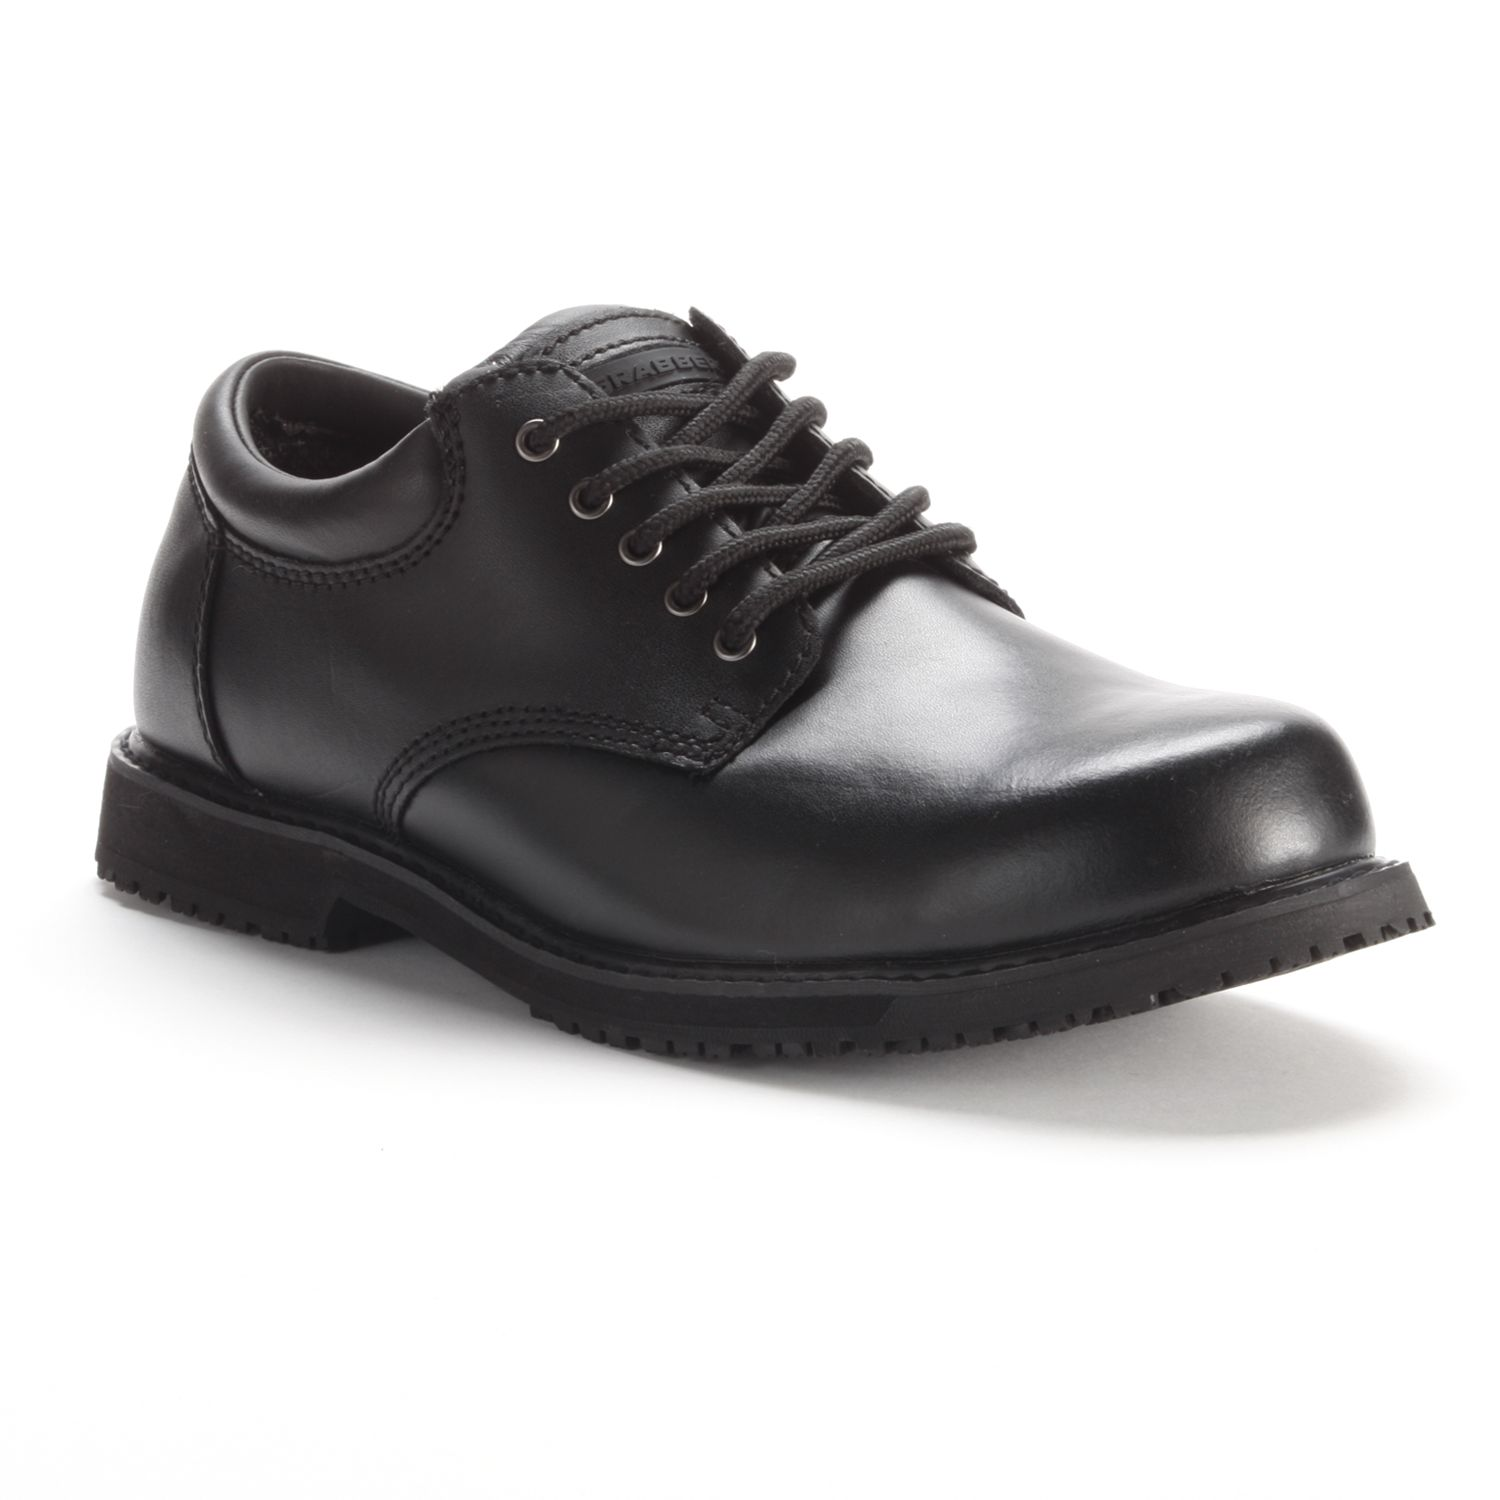 Mens Work Boots Sale